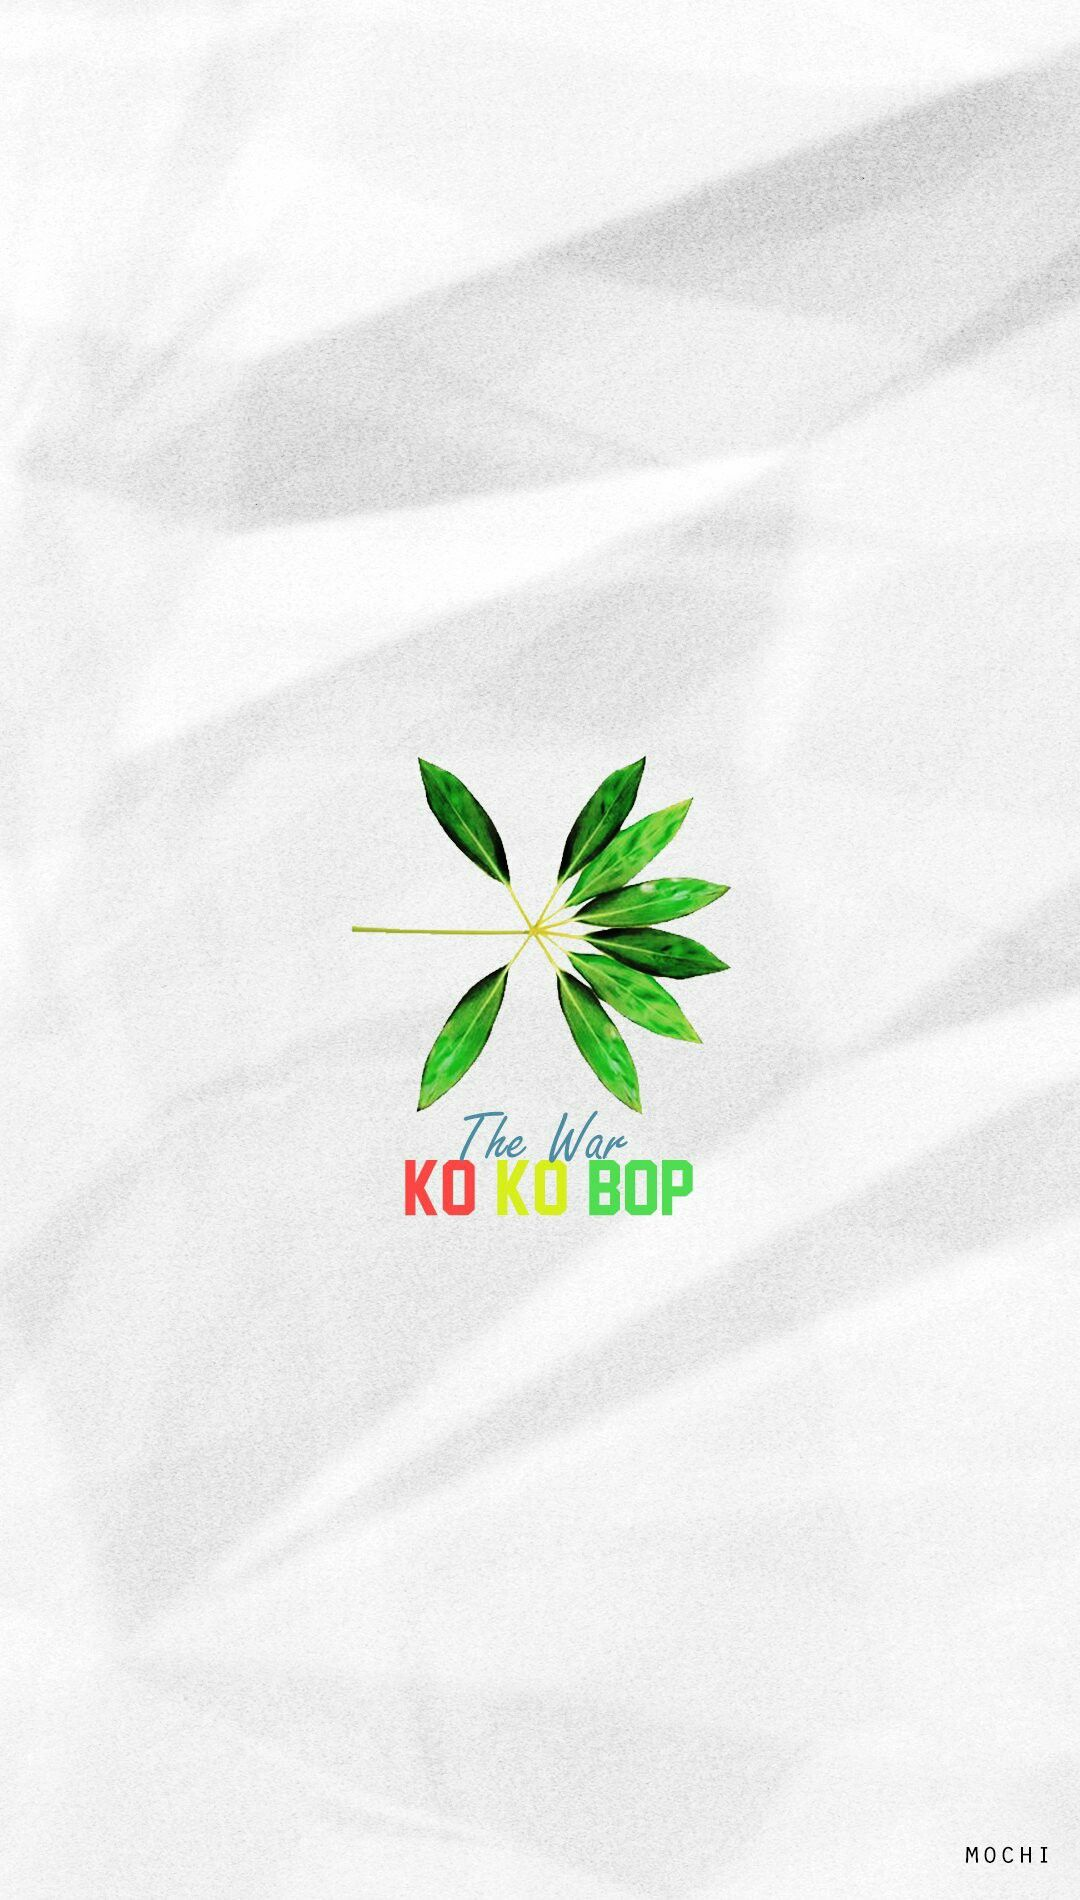 Kai iphone wallpaper tumblr - The War Ko Ko Bop Wallpaper